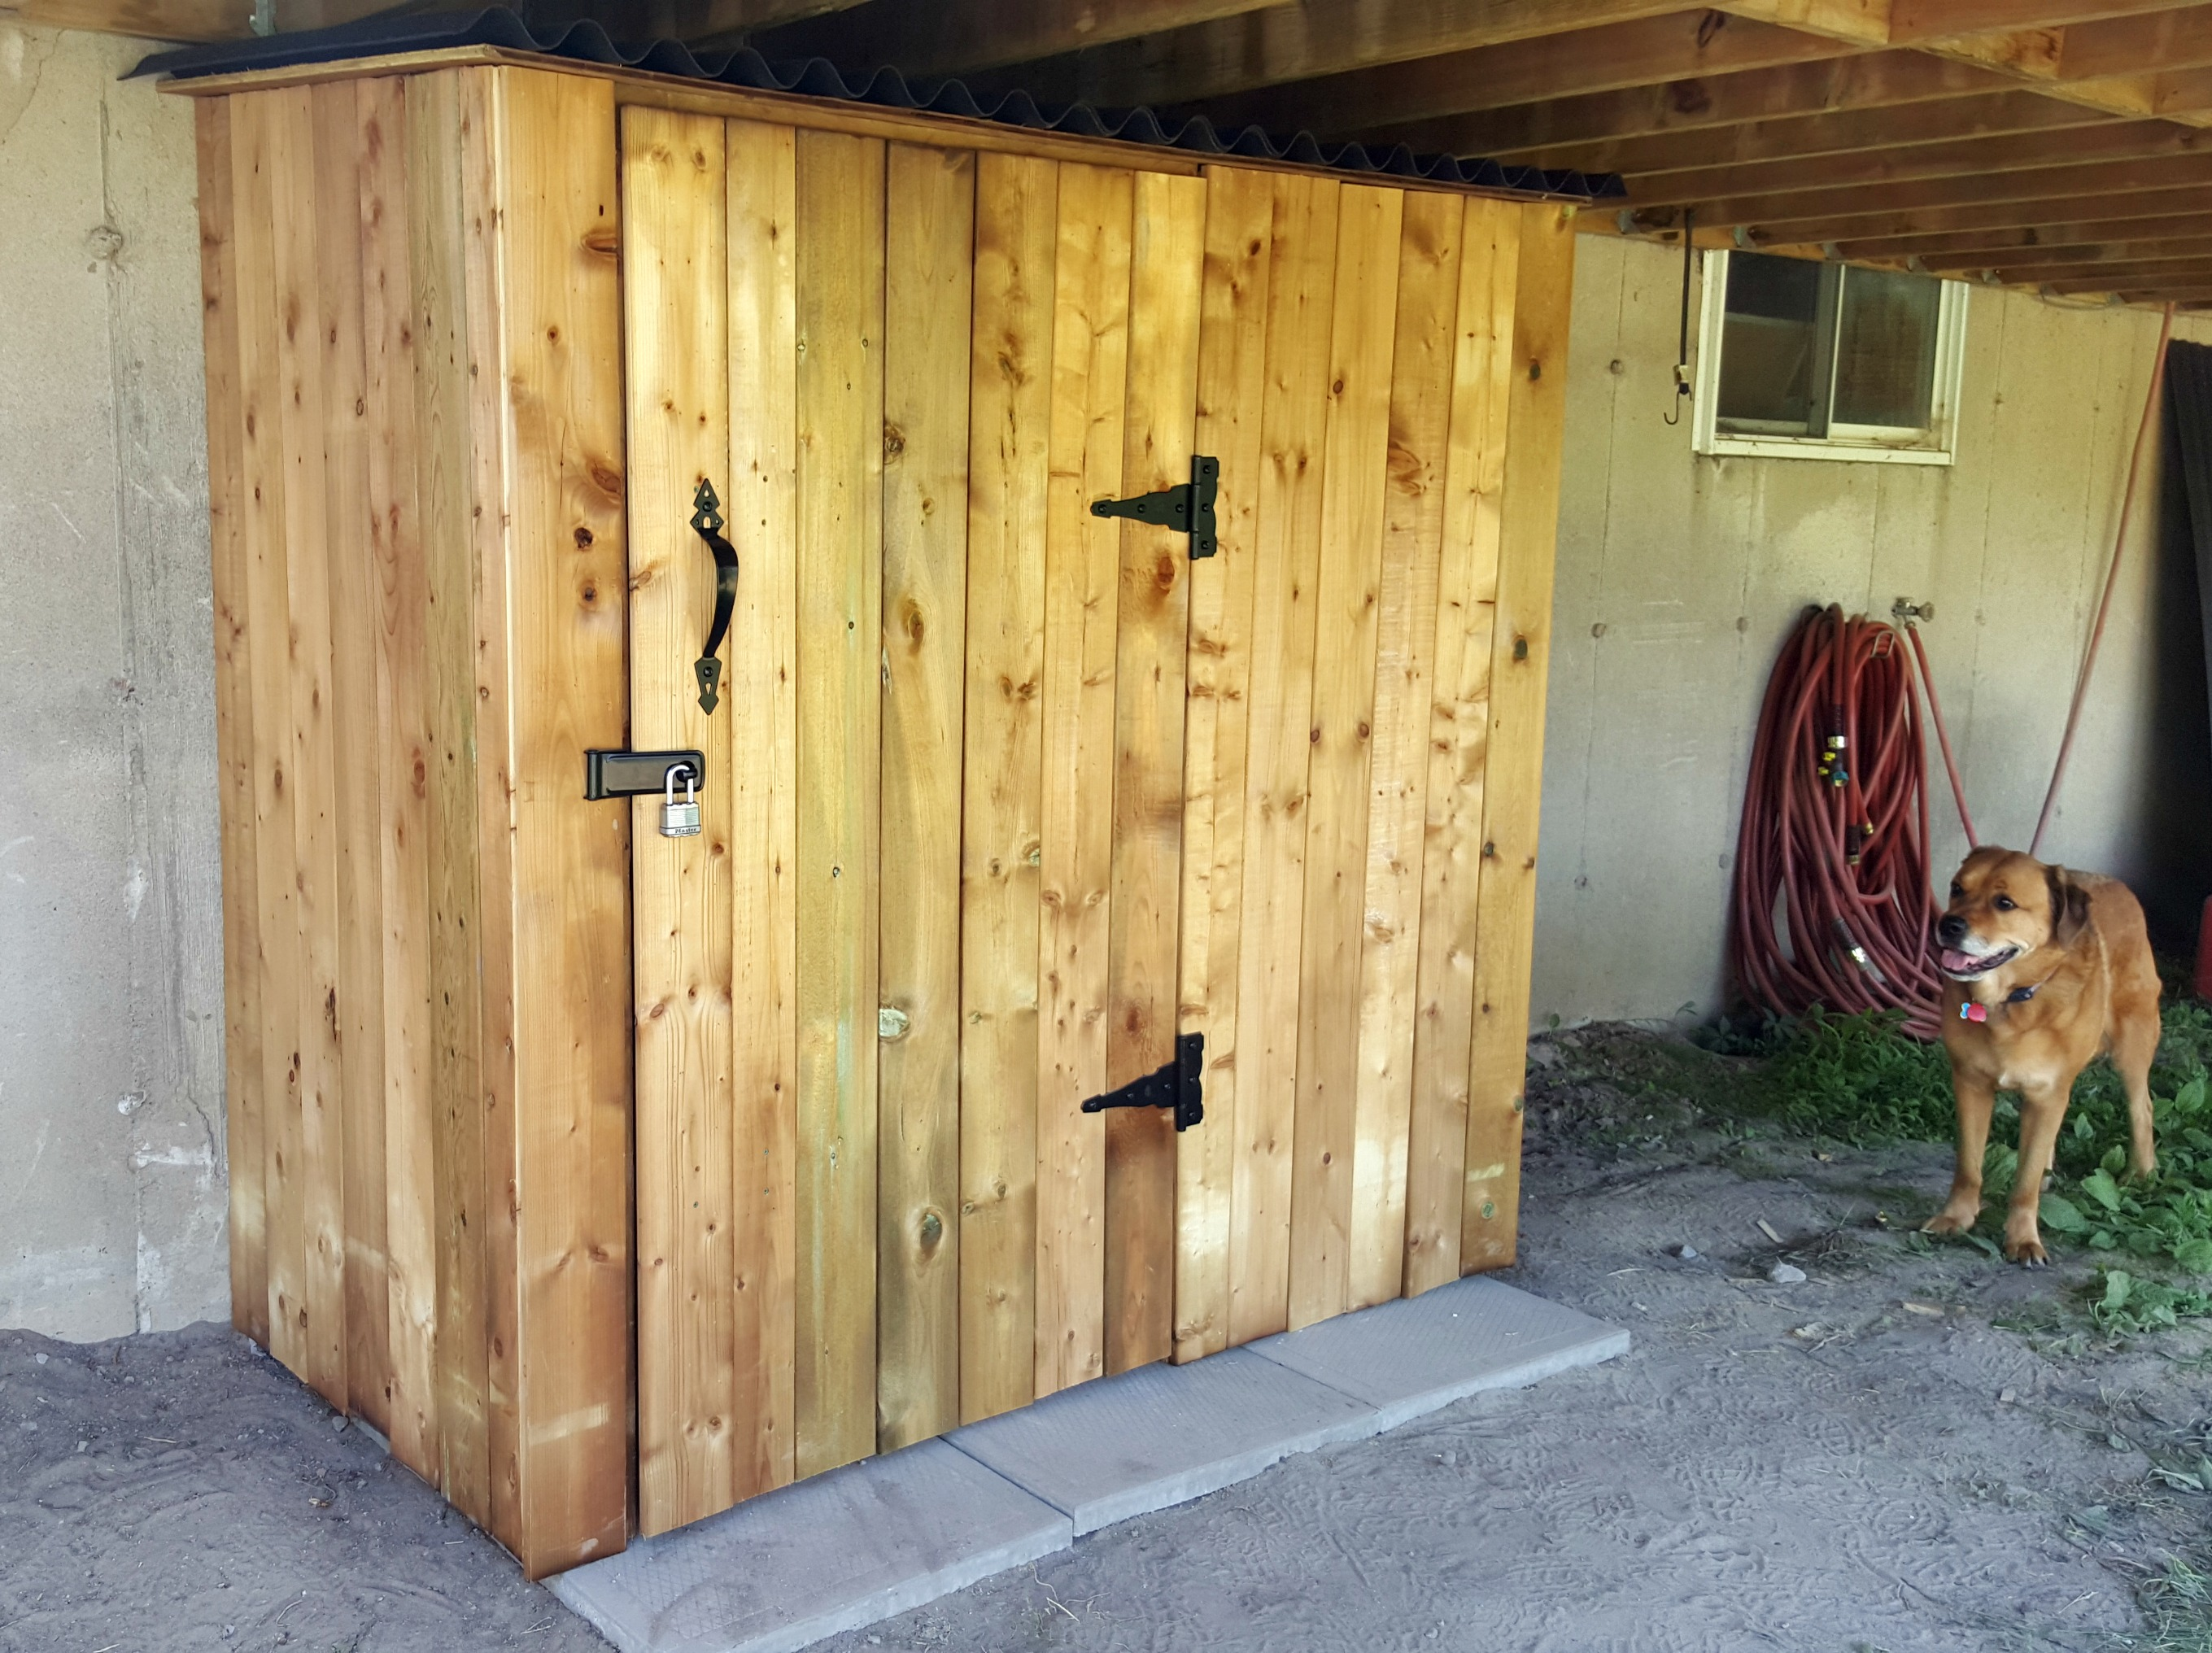 DIY Tool Shed (and a cute dog)